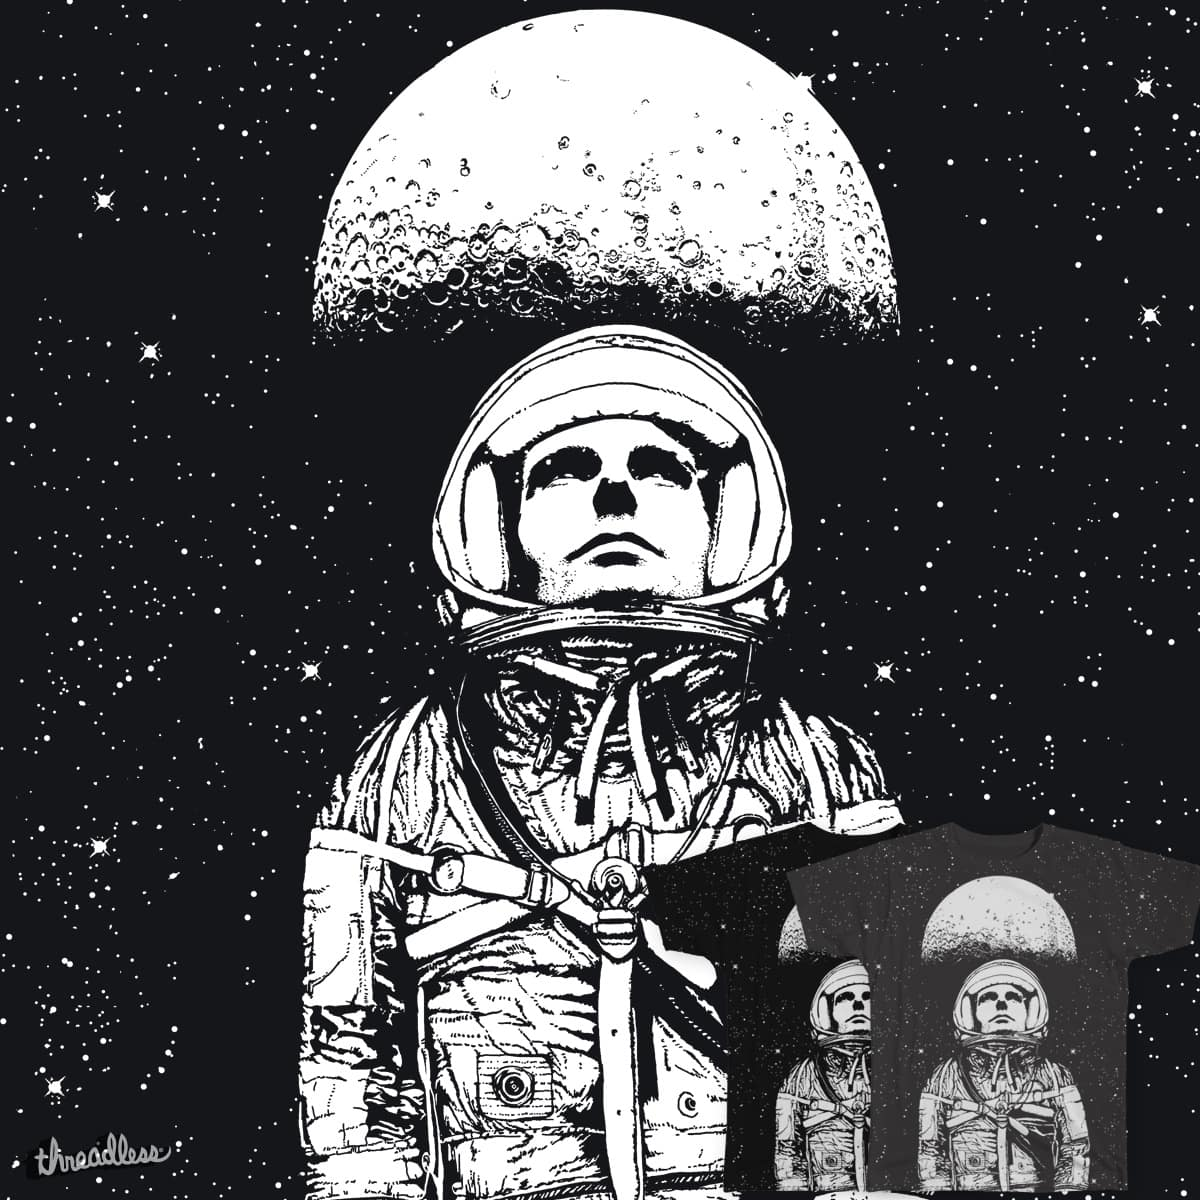 Looking for space by Sy_Graham on Threadless